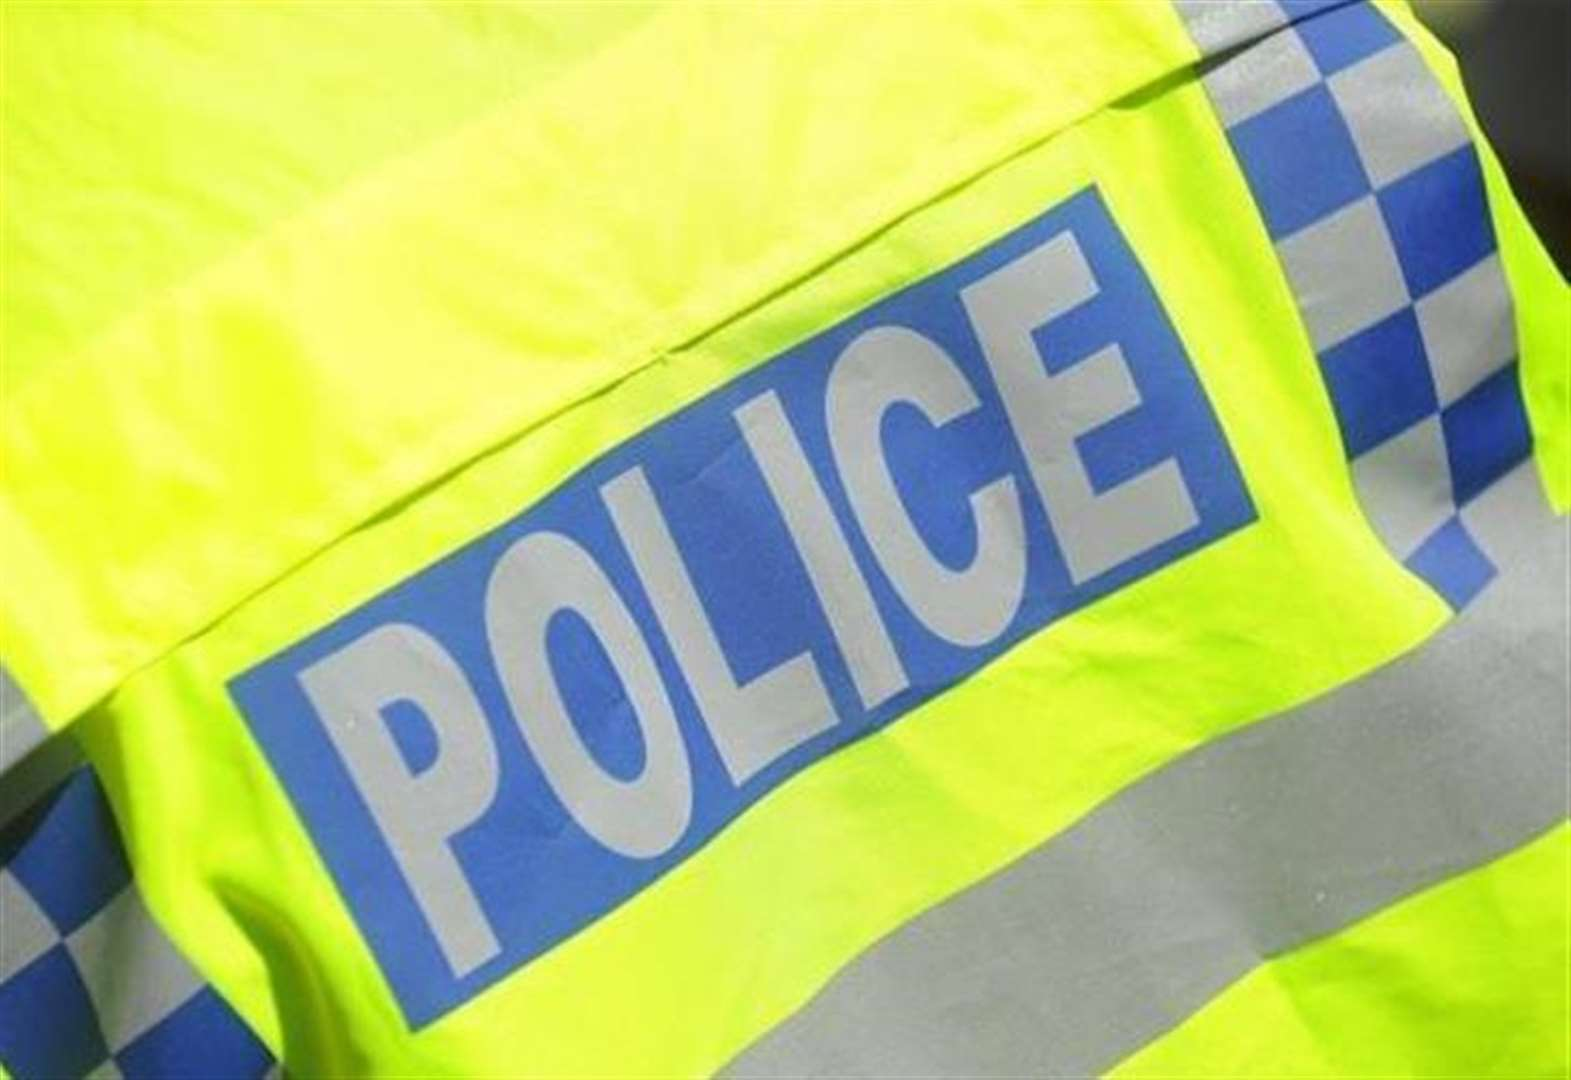 Police appeal after stranger approaches Spalding schoolgirl